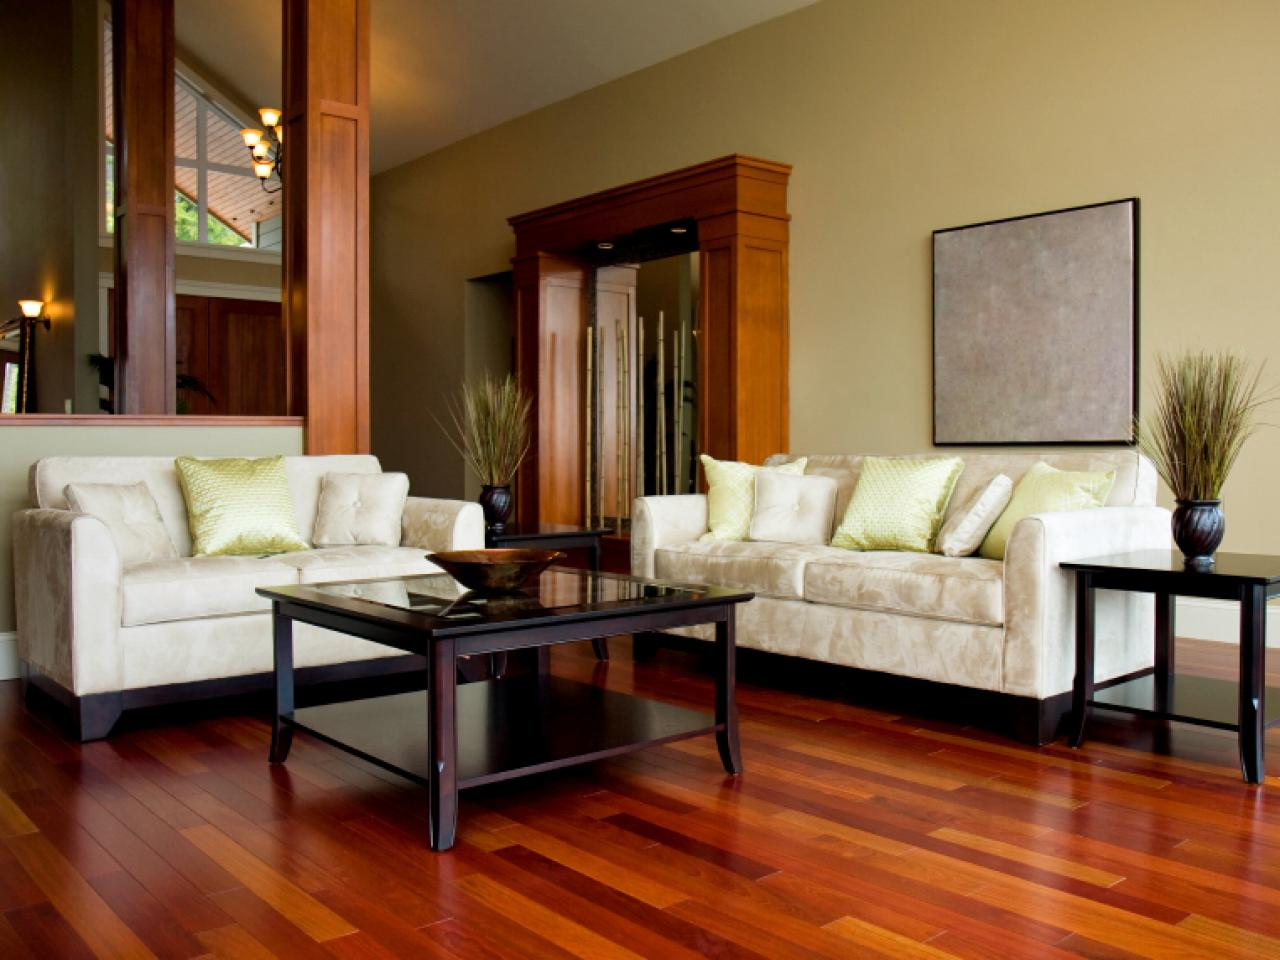 Guide to selecting flooring diy for Livingroom decoration ideas